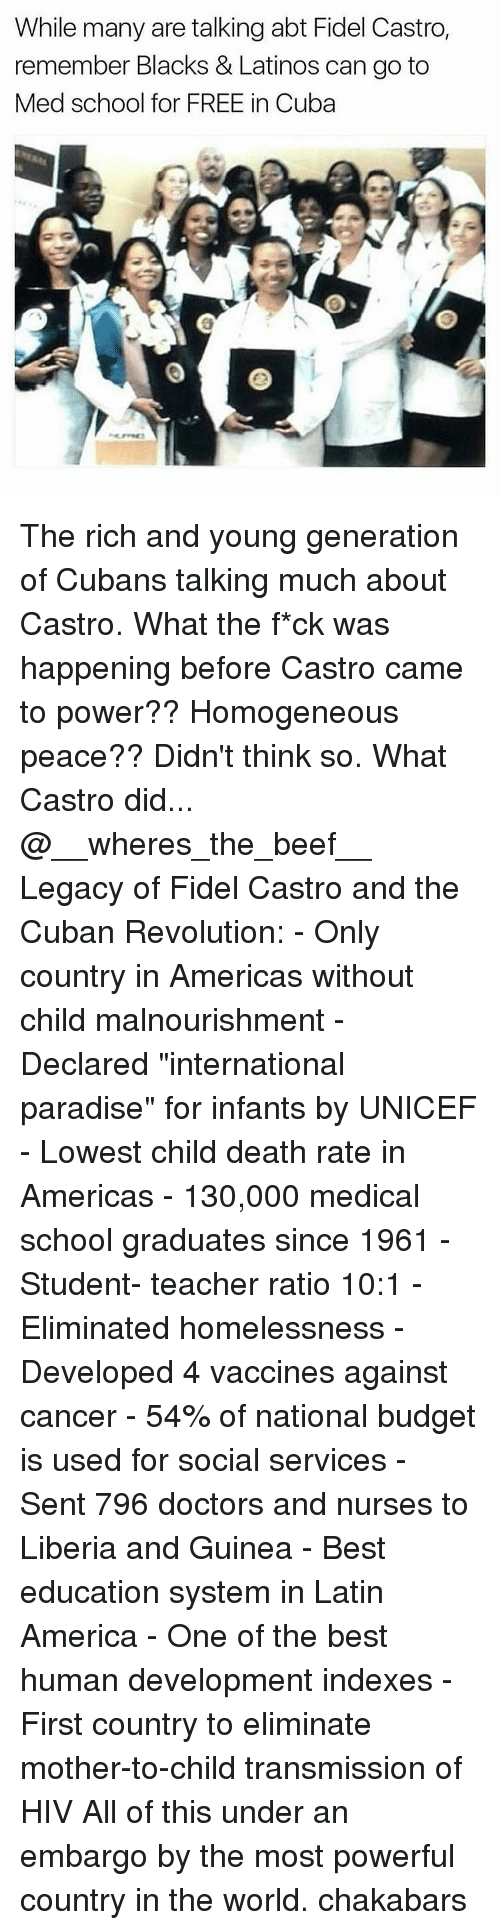 "Wheres The Beef: While many are talking abt Fidel Castro,  remember Blacks & Latinos can go to  Med school for FREE in Cuba The rich and young generation of Cubans talking much about Castro. What the f*ck was happening before Castro came to power?? Homogeneous peace?? Didn't think so. What Castro did... @__wheres_the_beef__ Legacy of Fidel Castro and the Cuban Revolution: - Only country in Americas without child malnourishment - Declared ""international paradise"" for infants by UNICEF - Lowest child death rate in Americas - 130,000 medical school graduates since 1961 - Student- teacher ratio 10:1 - Eliminated homelessness - Developed 4 vaccines against cancer - 54% of national budget is used for social services - Sent 796 doctors and nurses to Liberia and Guinea - Best education system in Latin America - One of the best human development indexes - First country to eliminate mother-to-child transmission of HIV All of this under an embargo by the most powerful country in the world. chakabars"